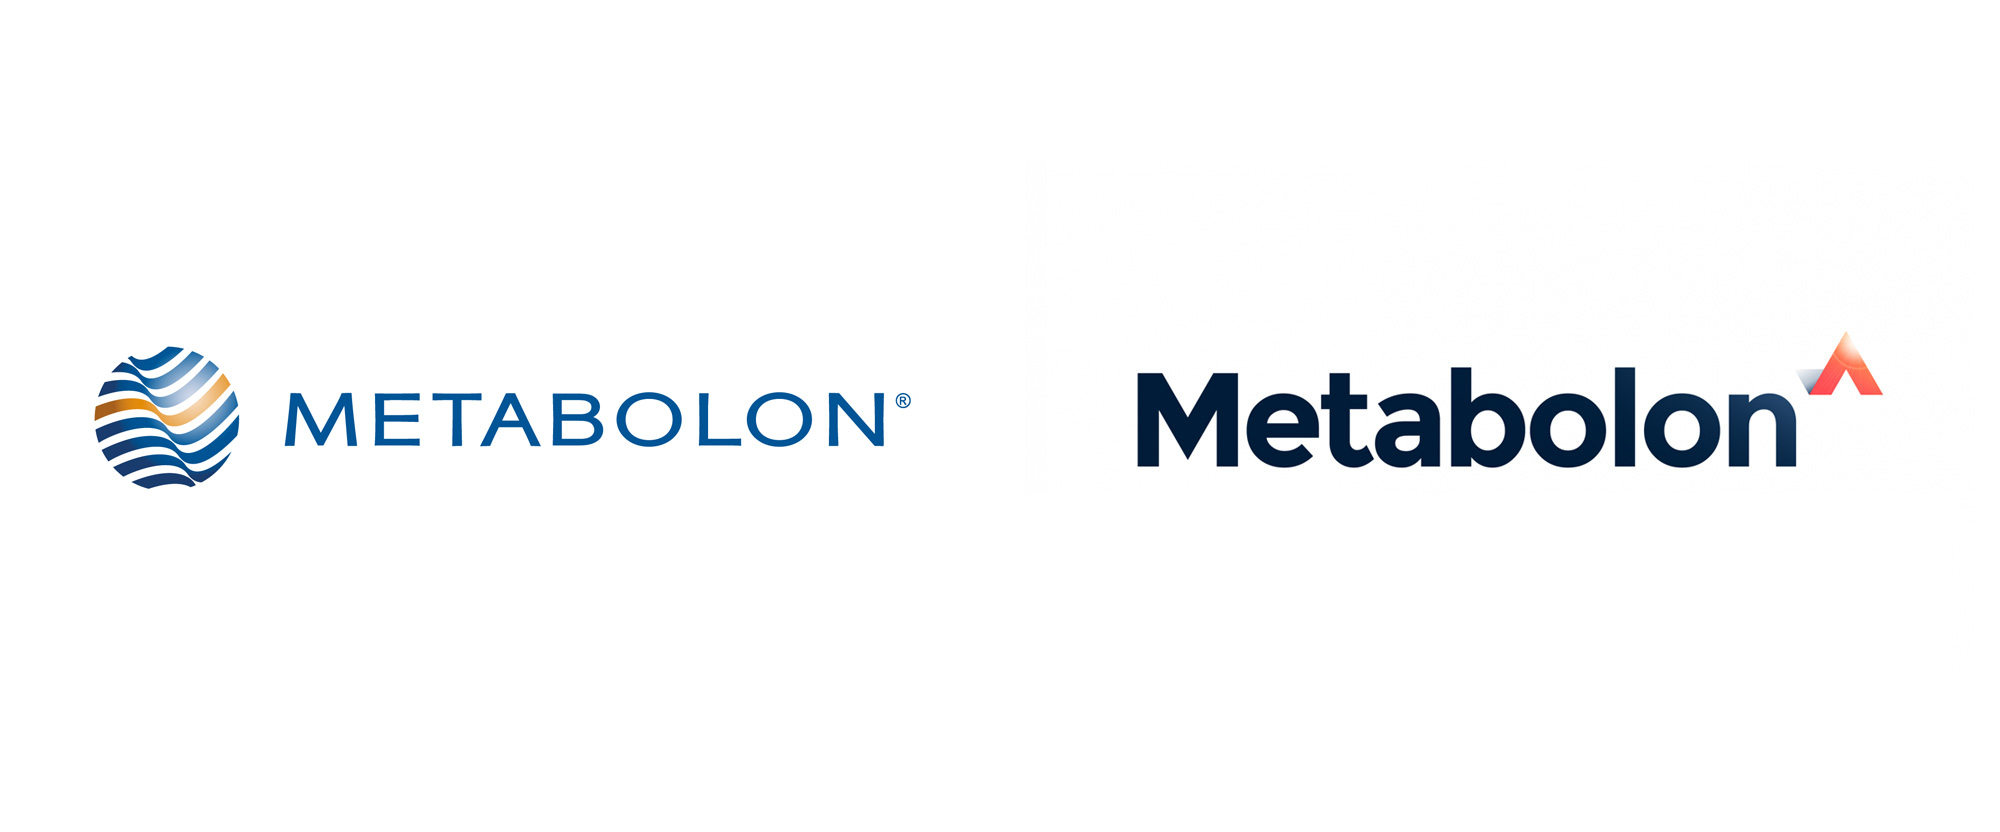 New Logo and Identity for Metabolon done In-house